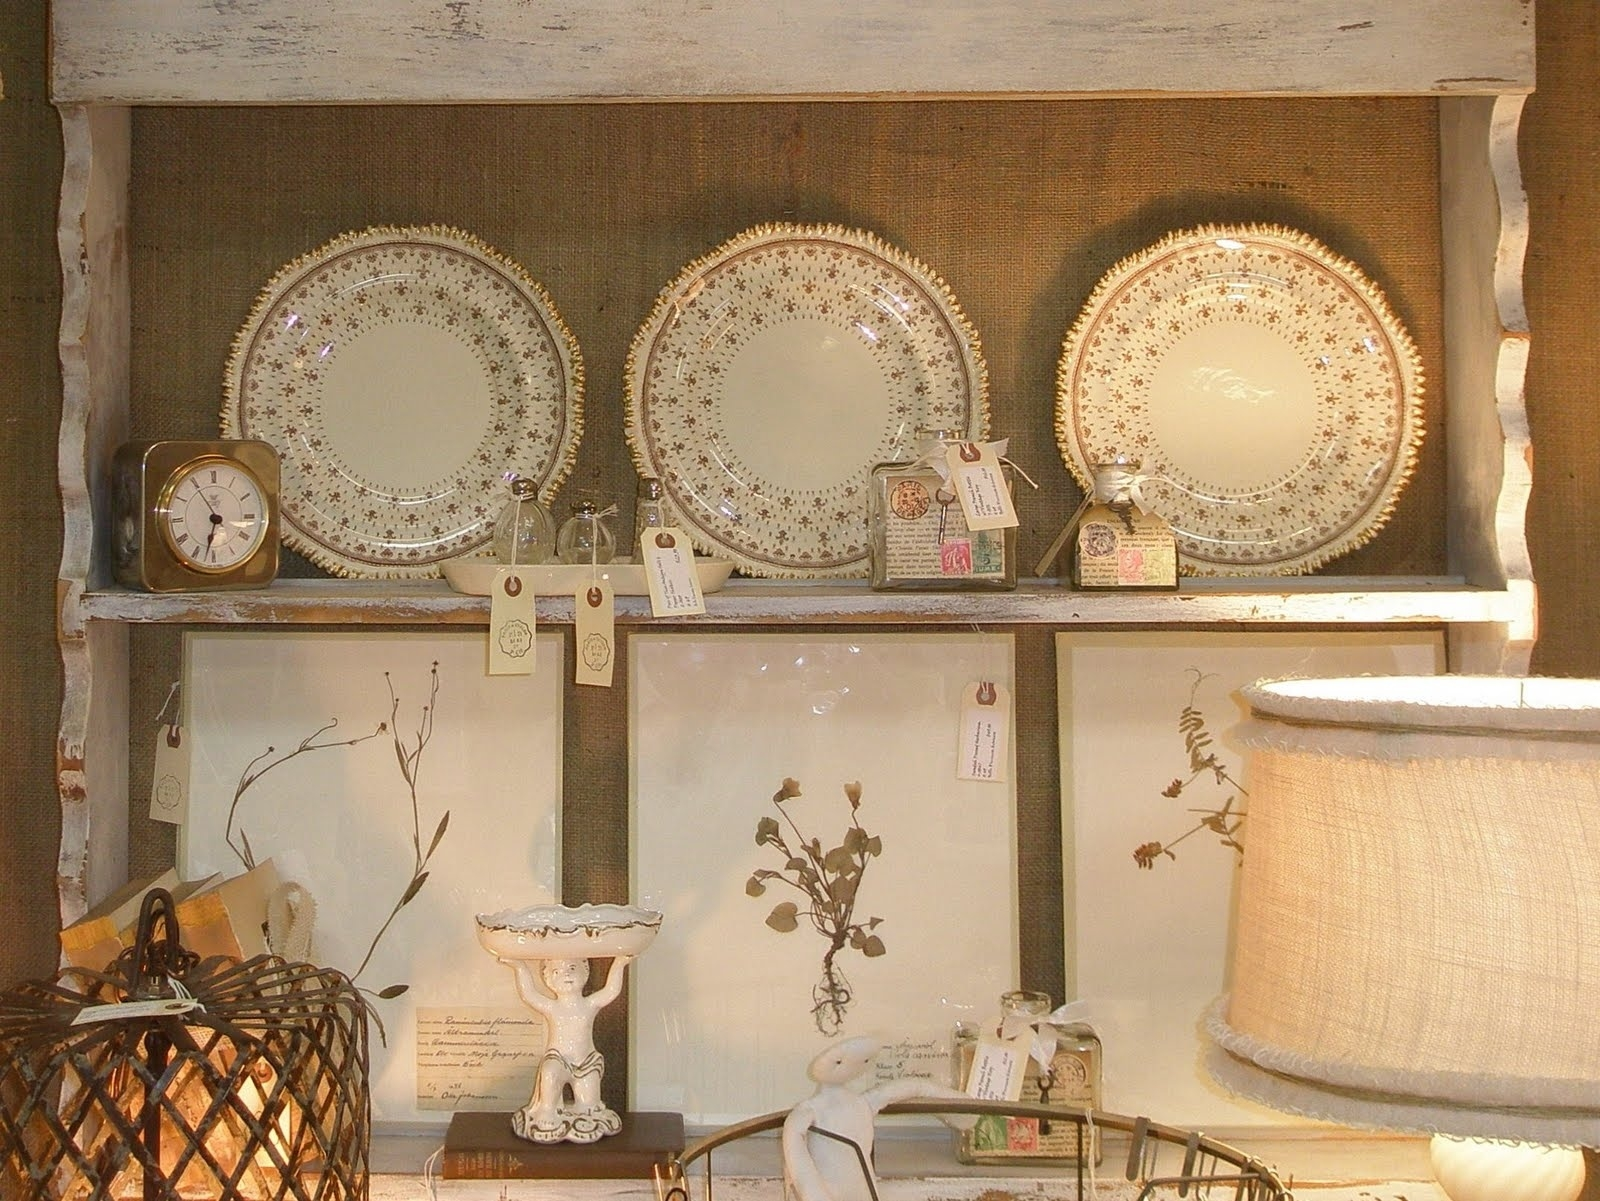 country kitchen wall shelf - kitchen appliances tips and review intended for Decorate Your Walls With Country Wall Shelves